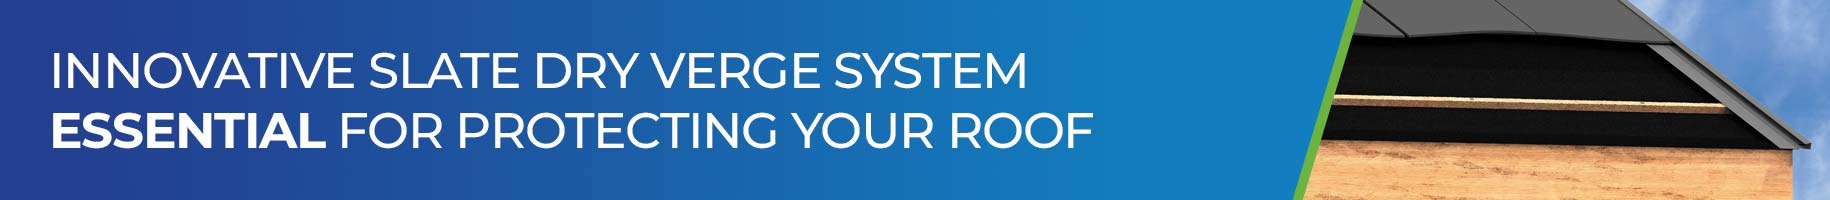 Innovative Slate Dry Verge System Essential for Protecting Your Roof